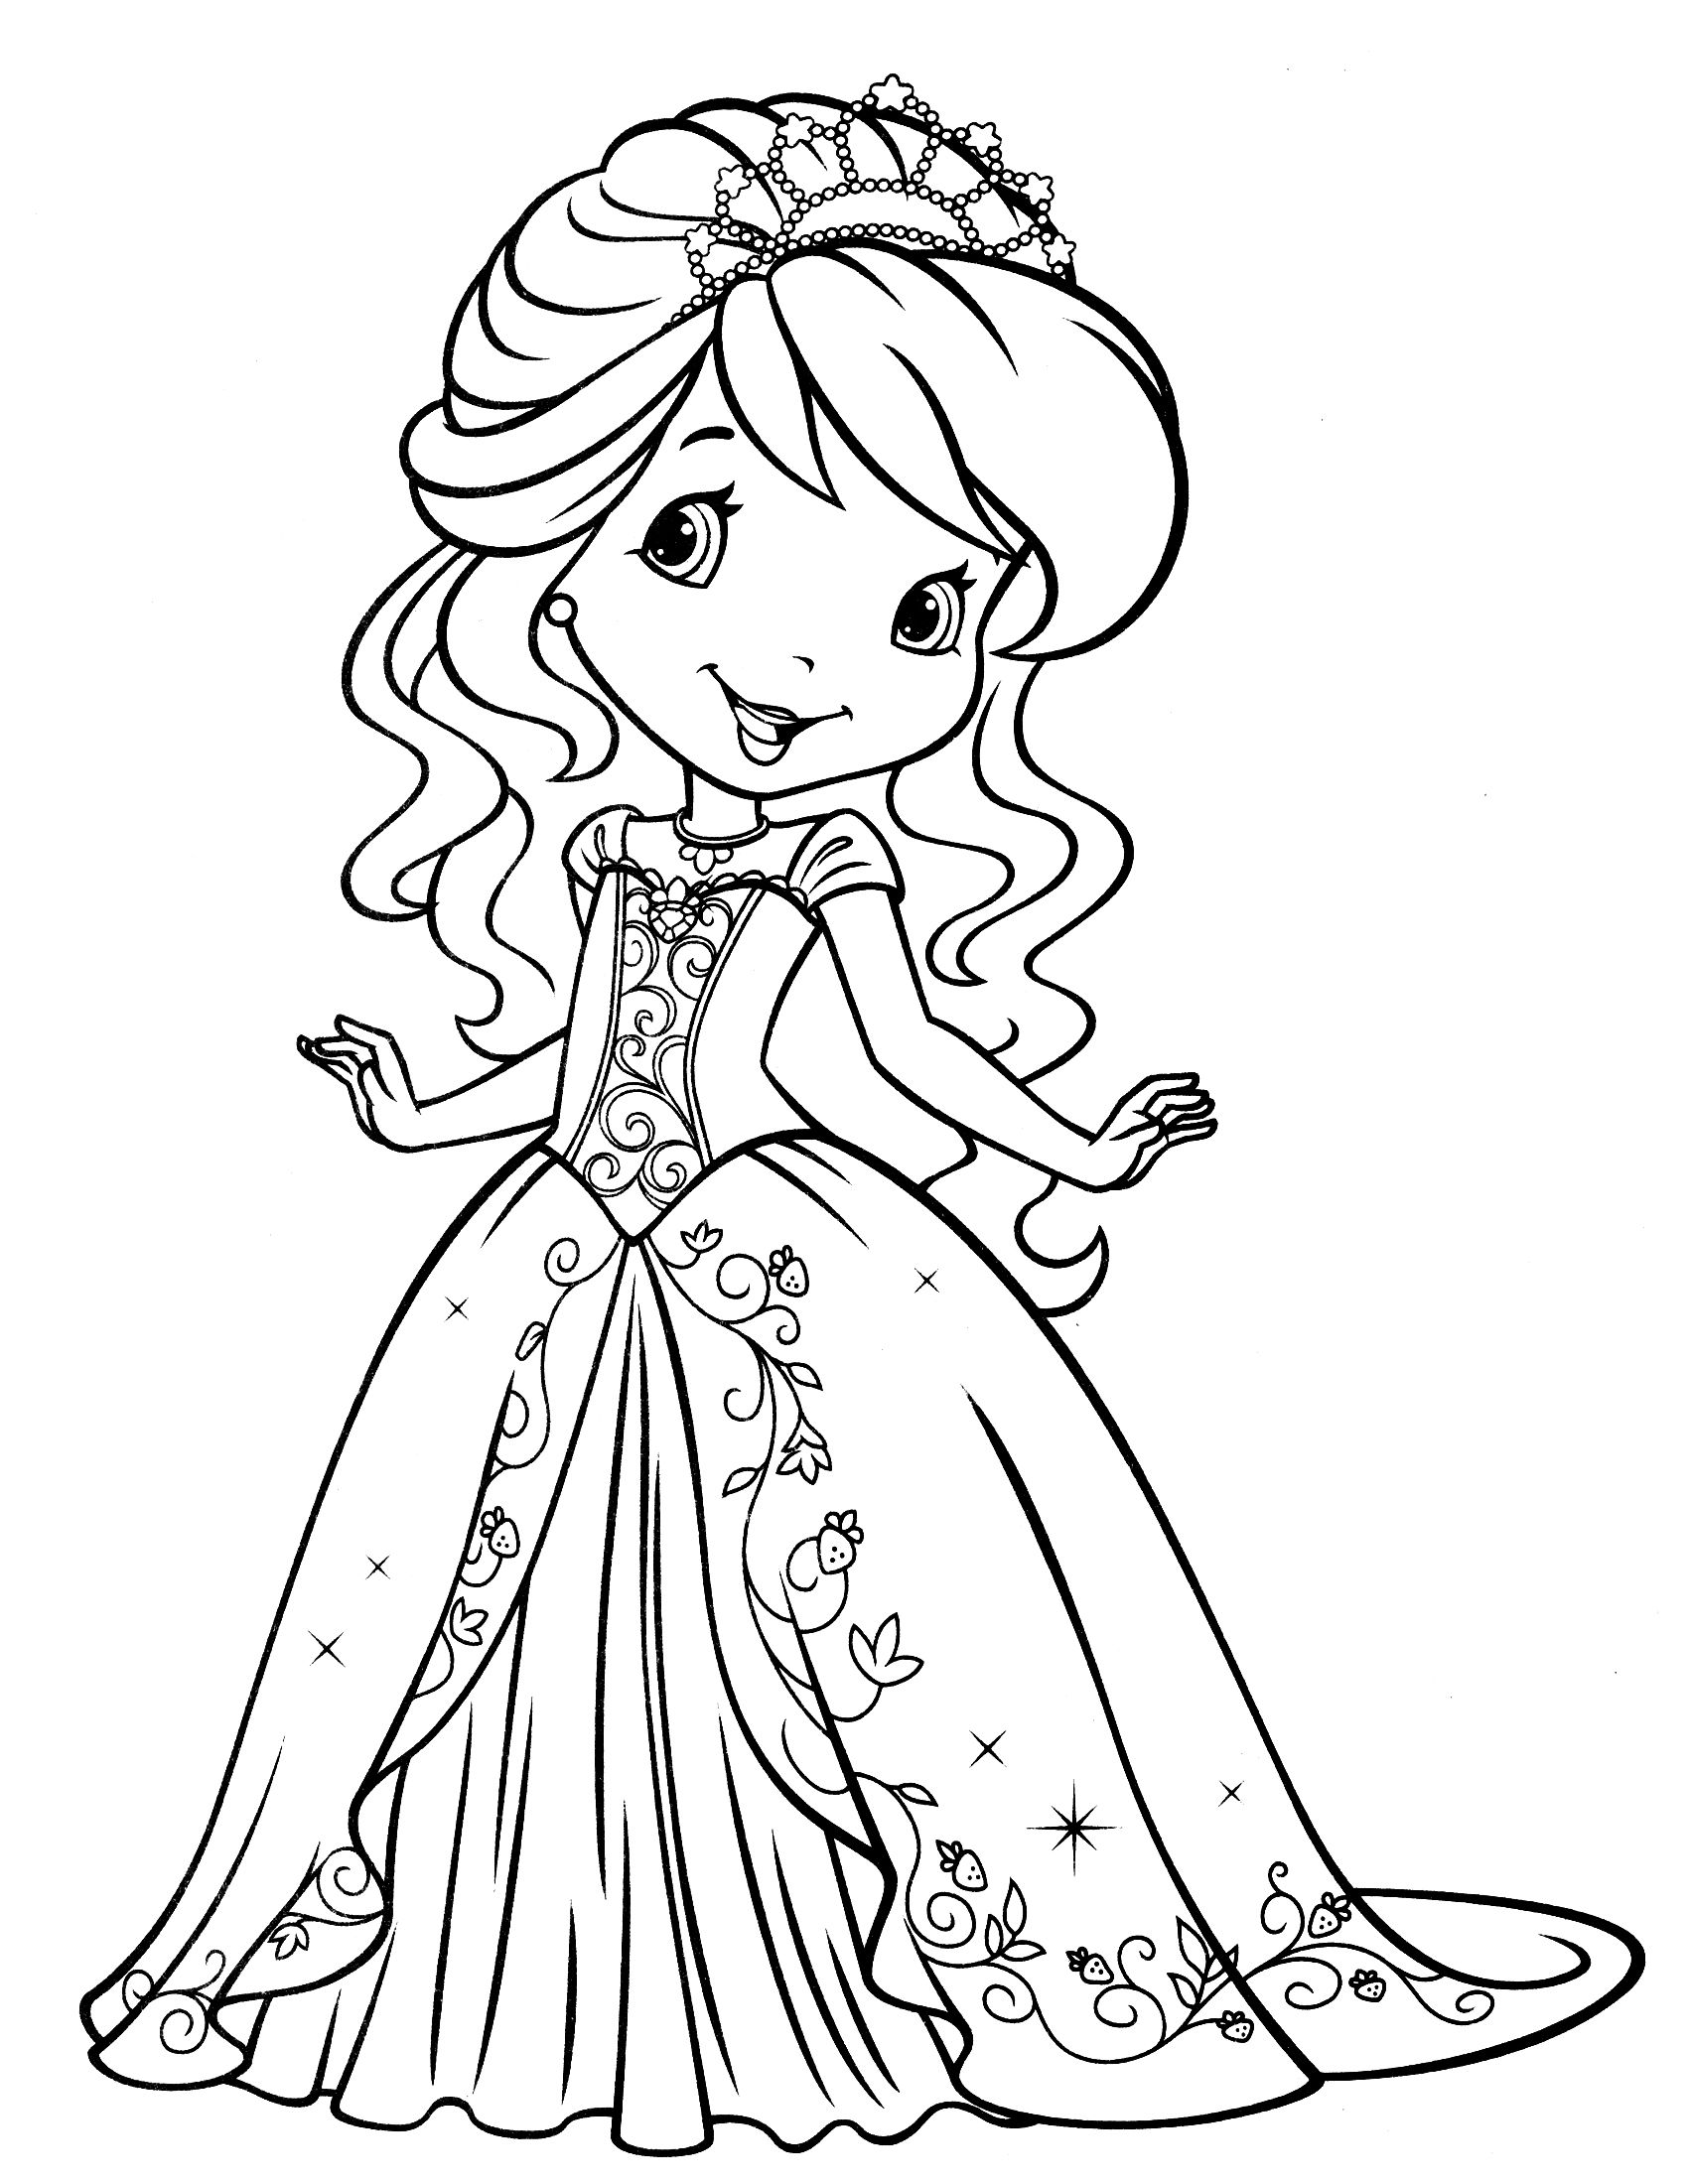 strawberry shortcake coloring page | Calcos para pintar | Pinterest ...